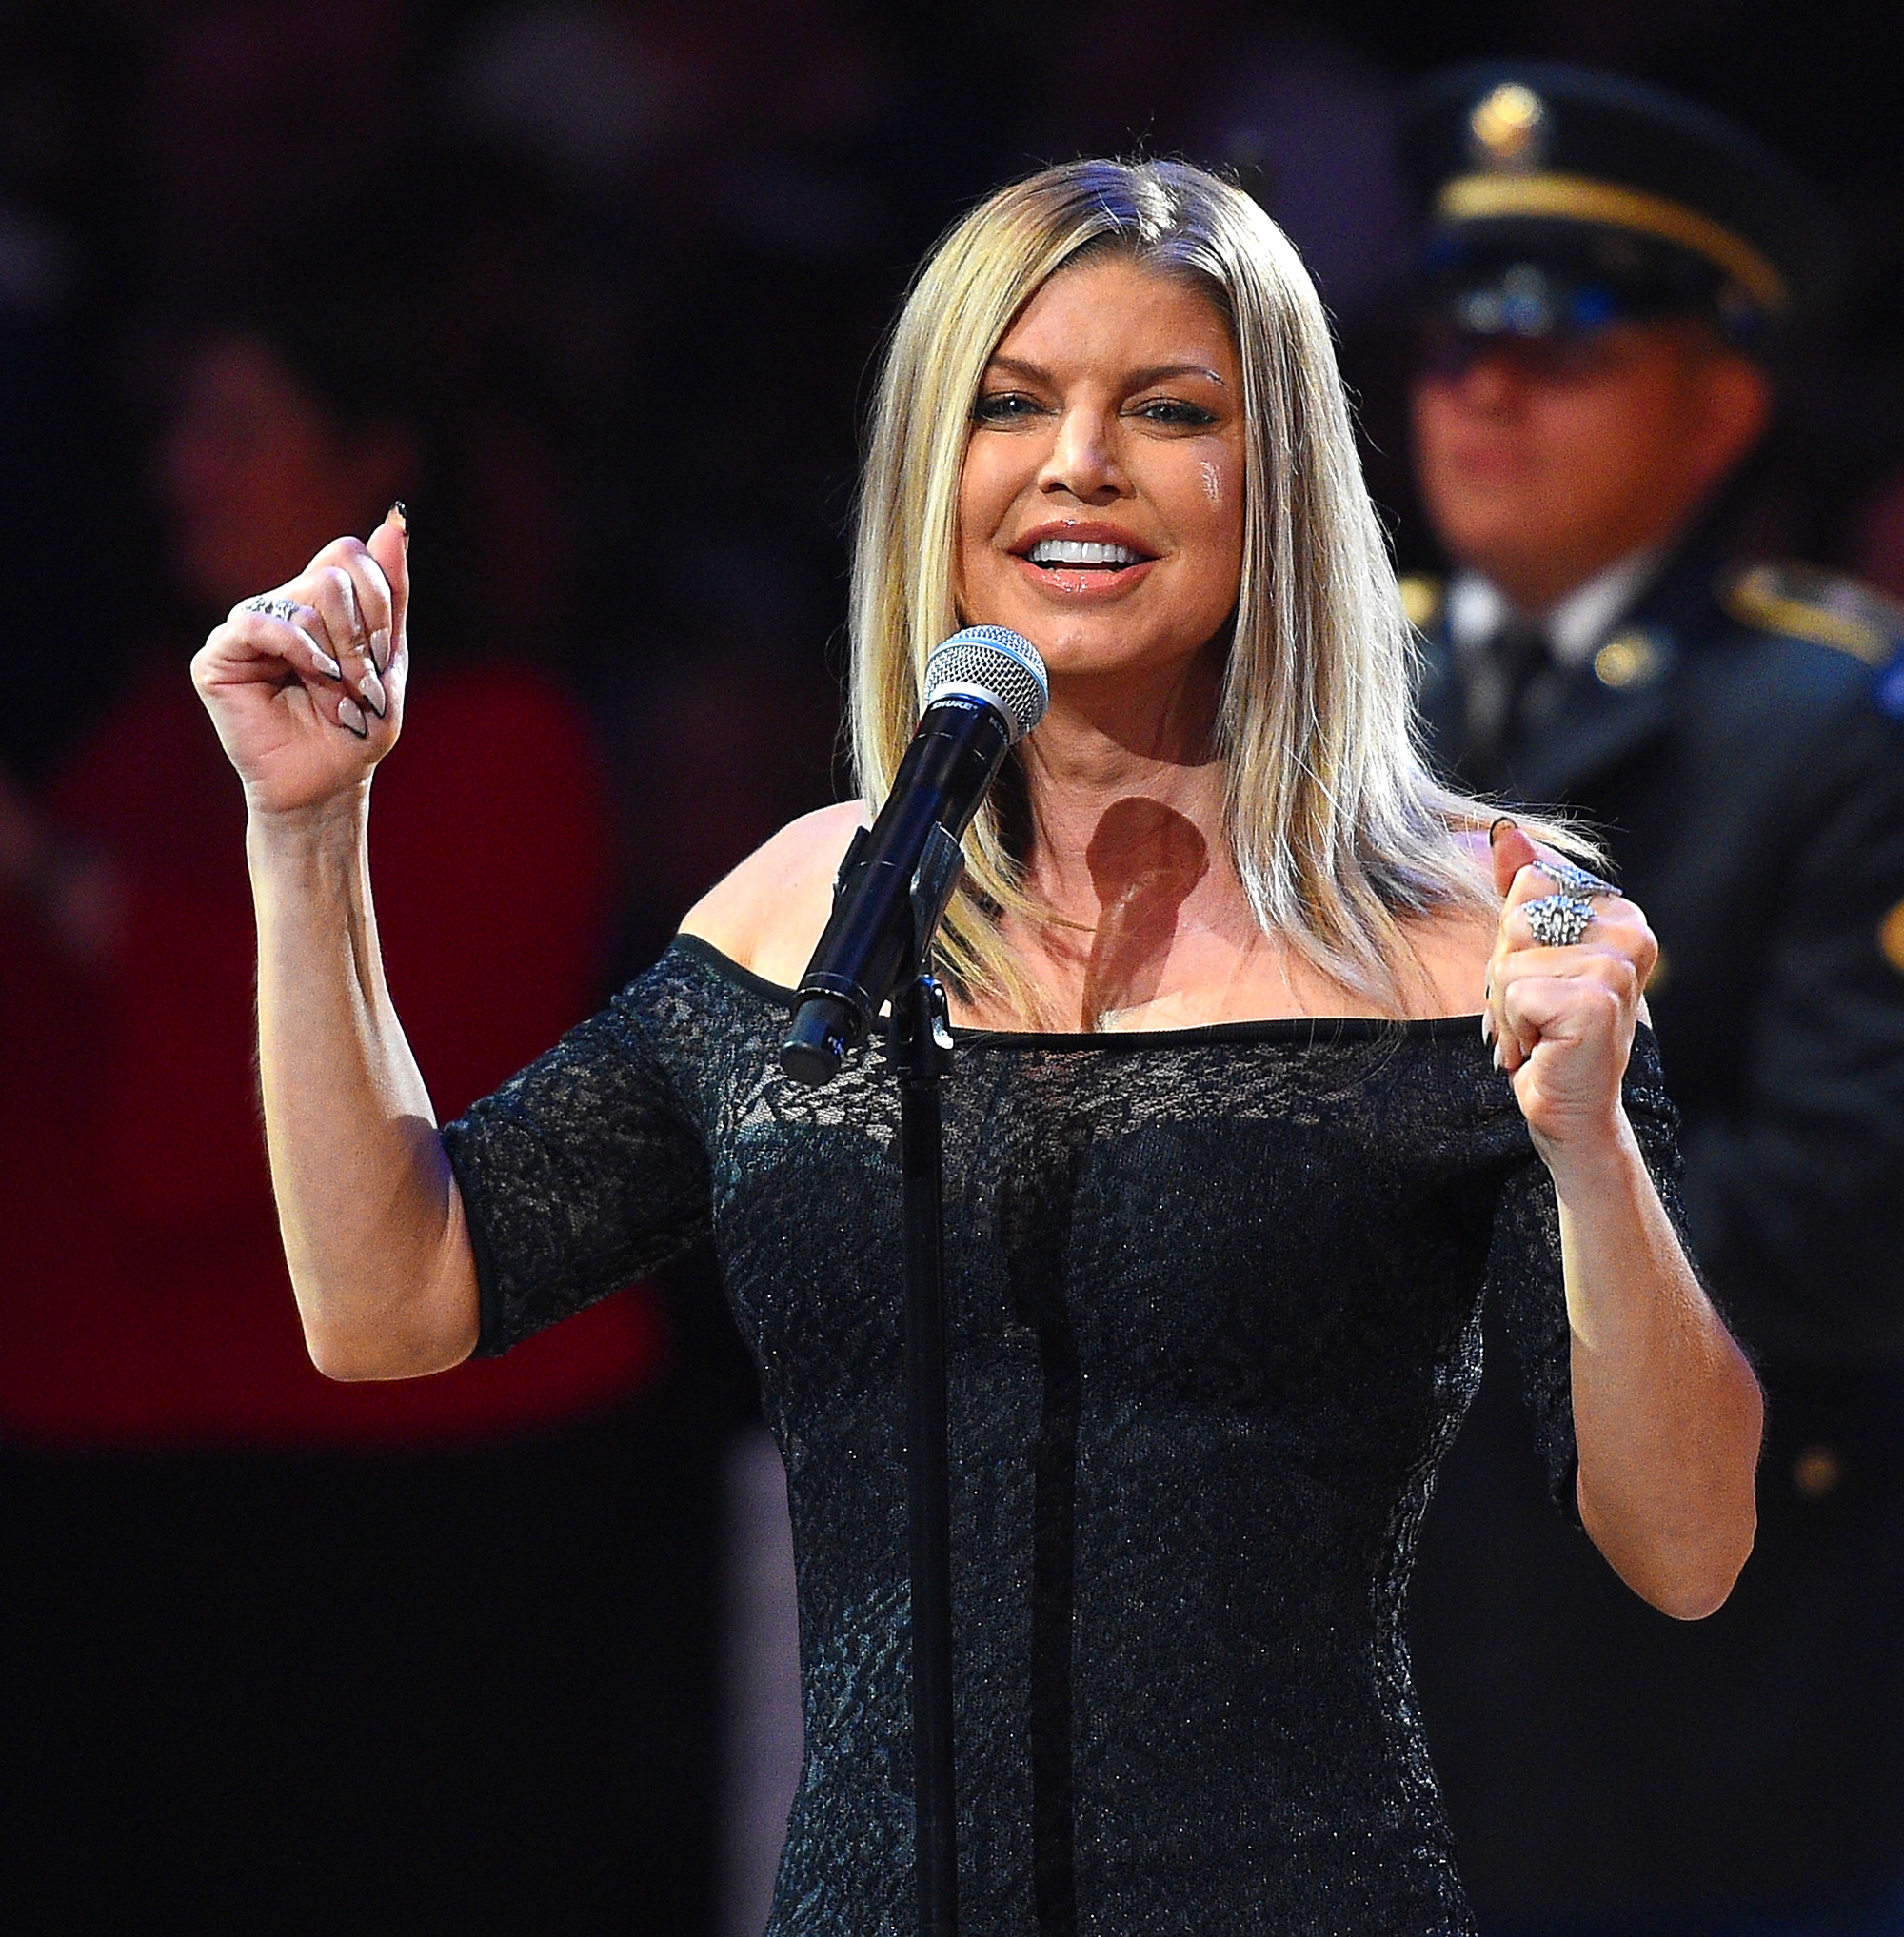 Fergie sings the national anthem prior to the NBA All-Star Game 2018 at Staples Center in Los Angeles on February 18, 2018.